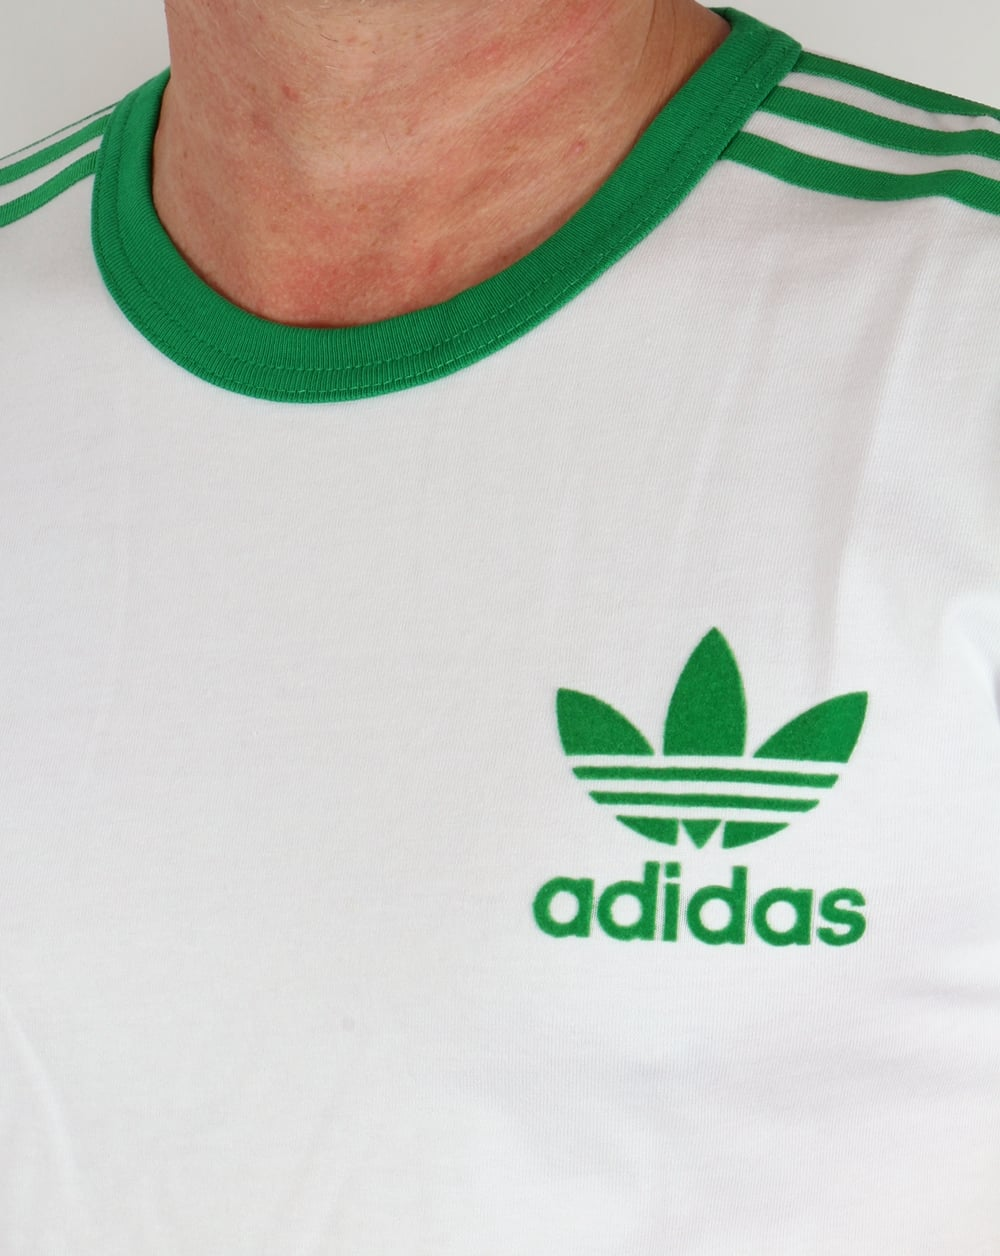 adidas 3 stripes t shirt white green tee trefoil mens. Black Bedroom Furniture Sets. Home Design Ideas